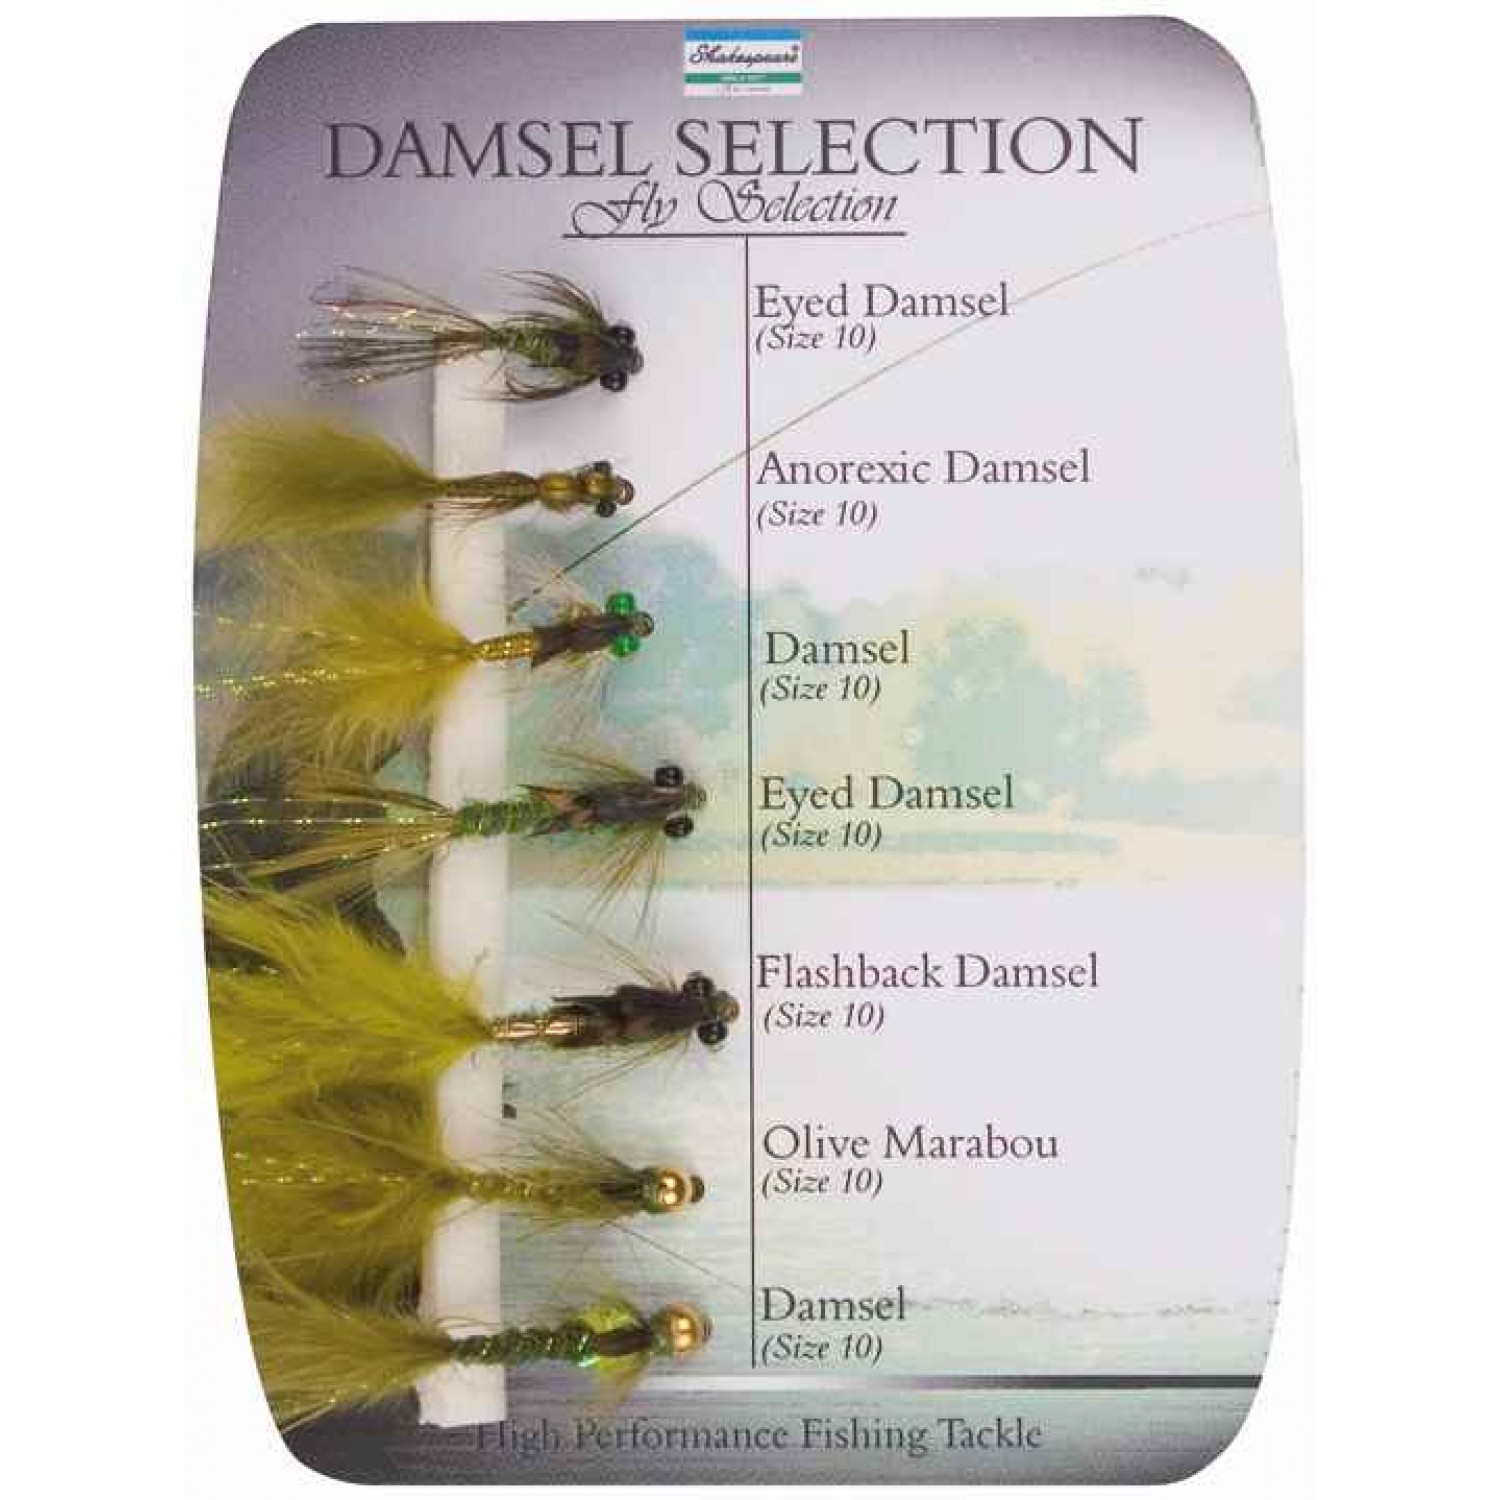 Shakespeare Fly Selection No4 Damsel Selection